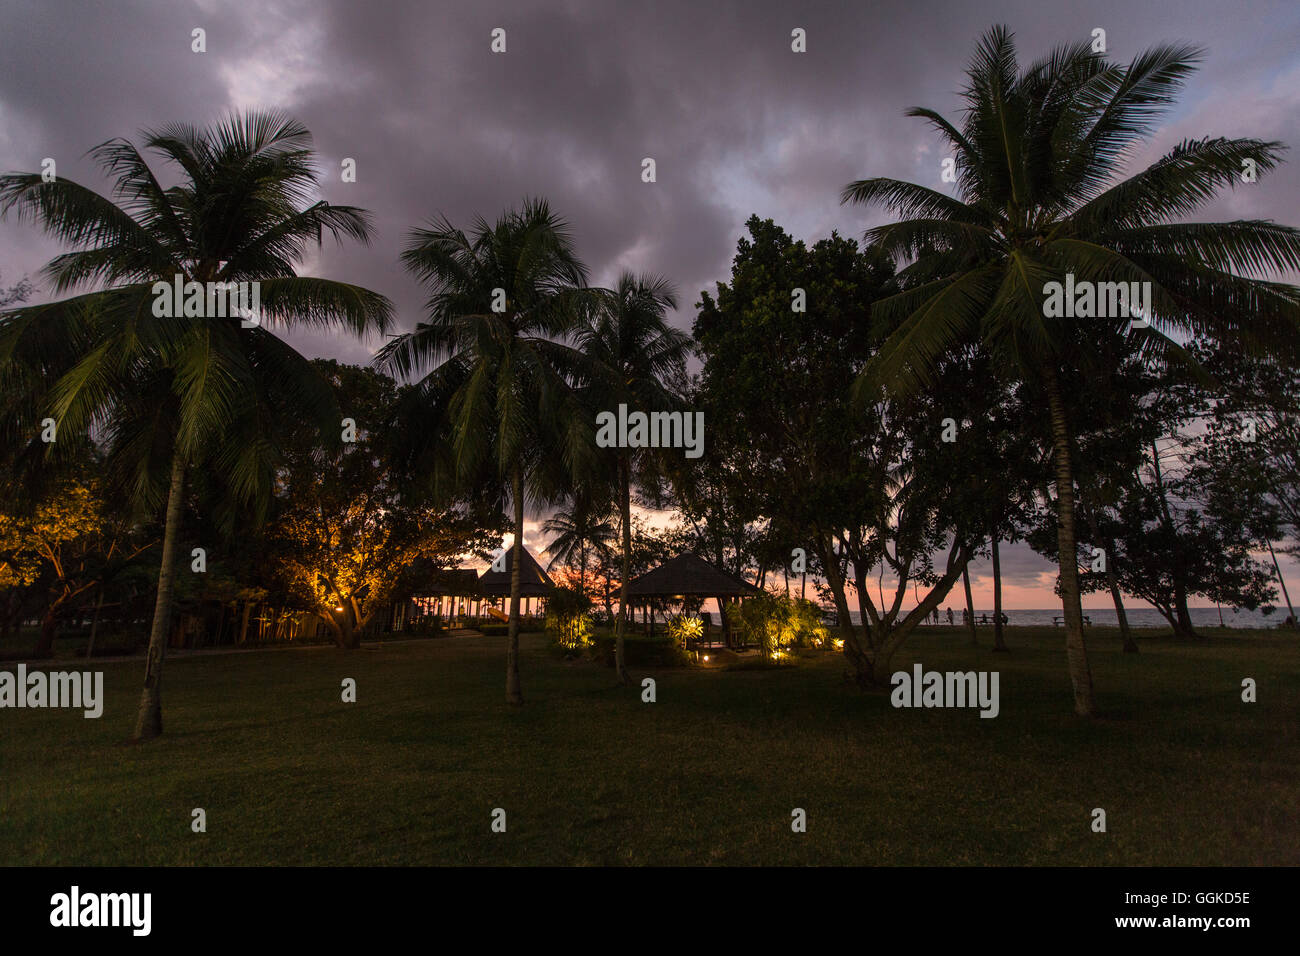 On the Beach at Nexar Resort, Kota Kinabalu, Borneo, Malaysia. - Stock Image